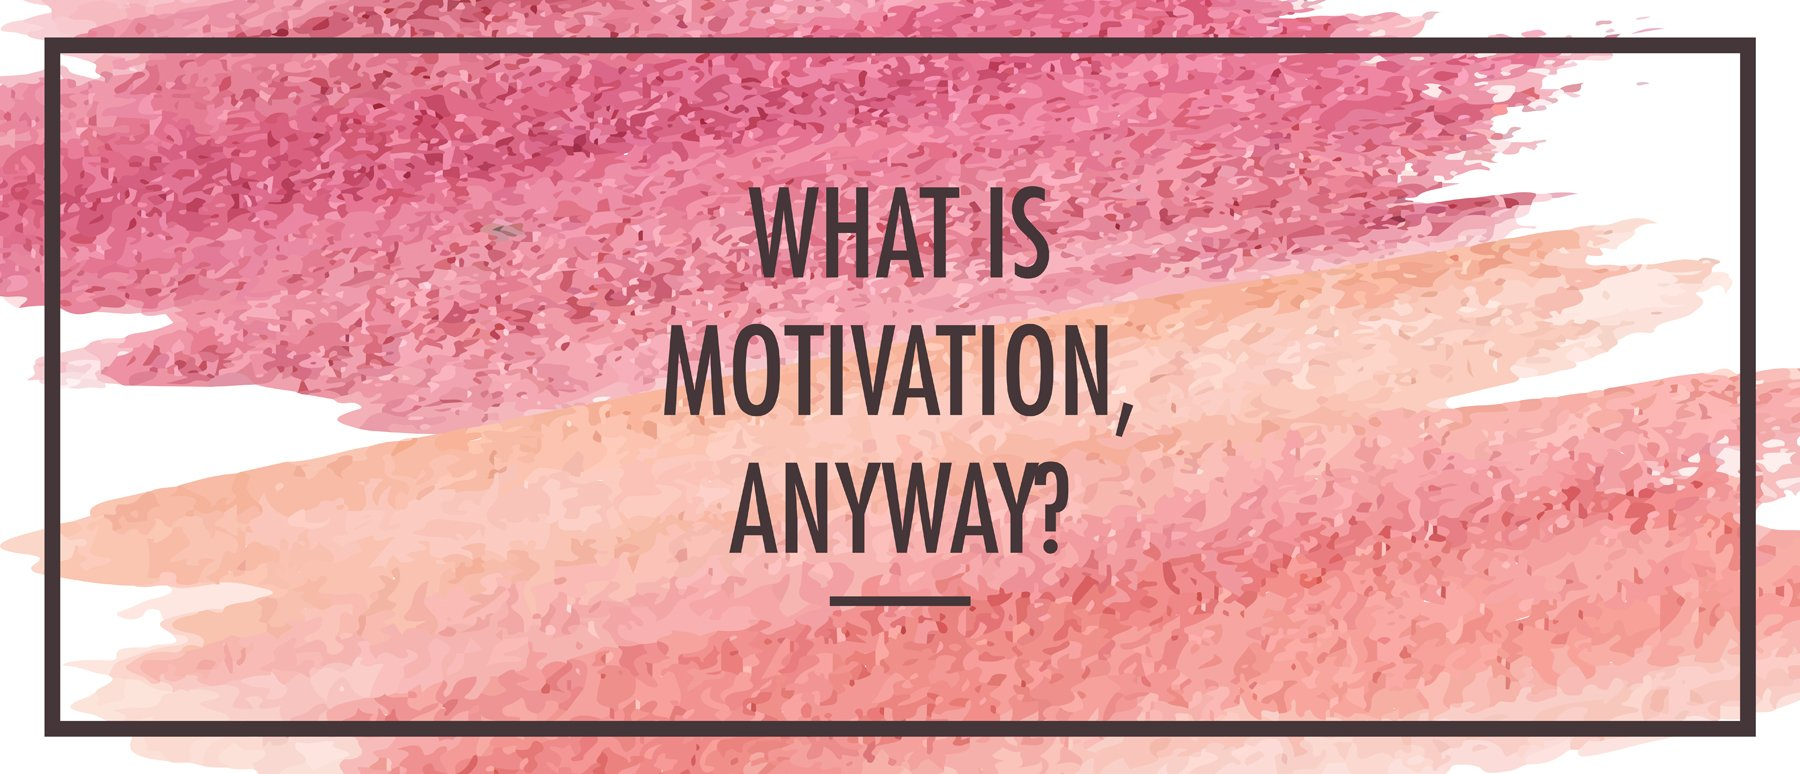 What is motivation and how do we keep it going?